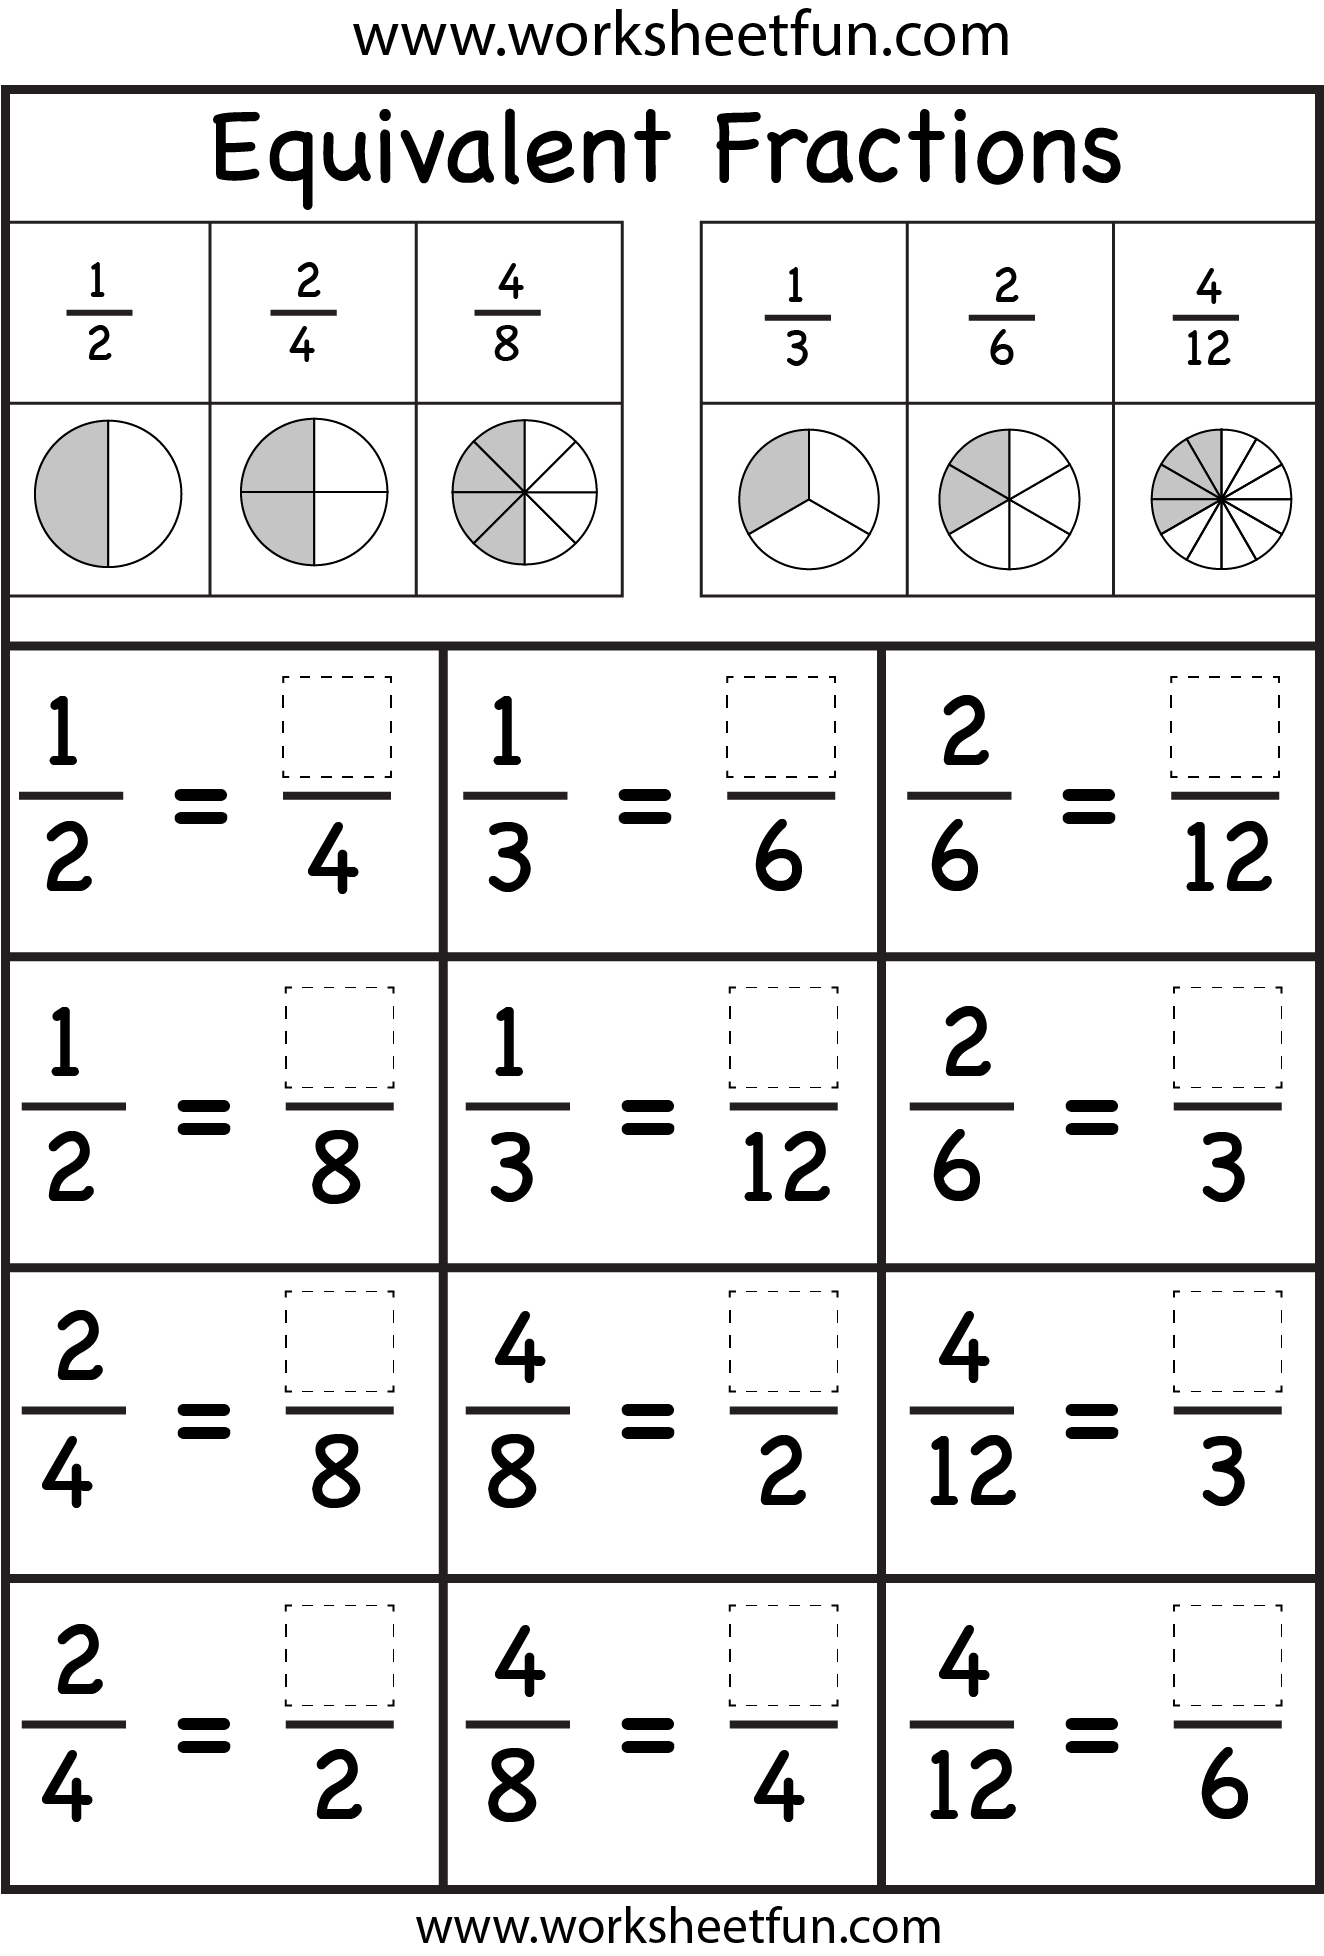 Worksheets Free Printable Fraction Worksheets equivalent fractions fraction worksheets pinterest are equal to each other two if they